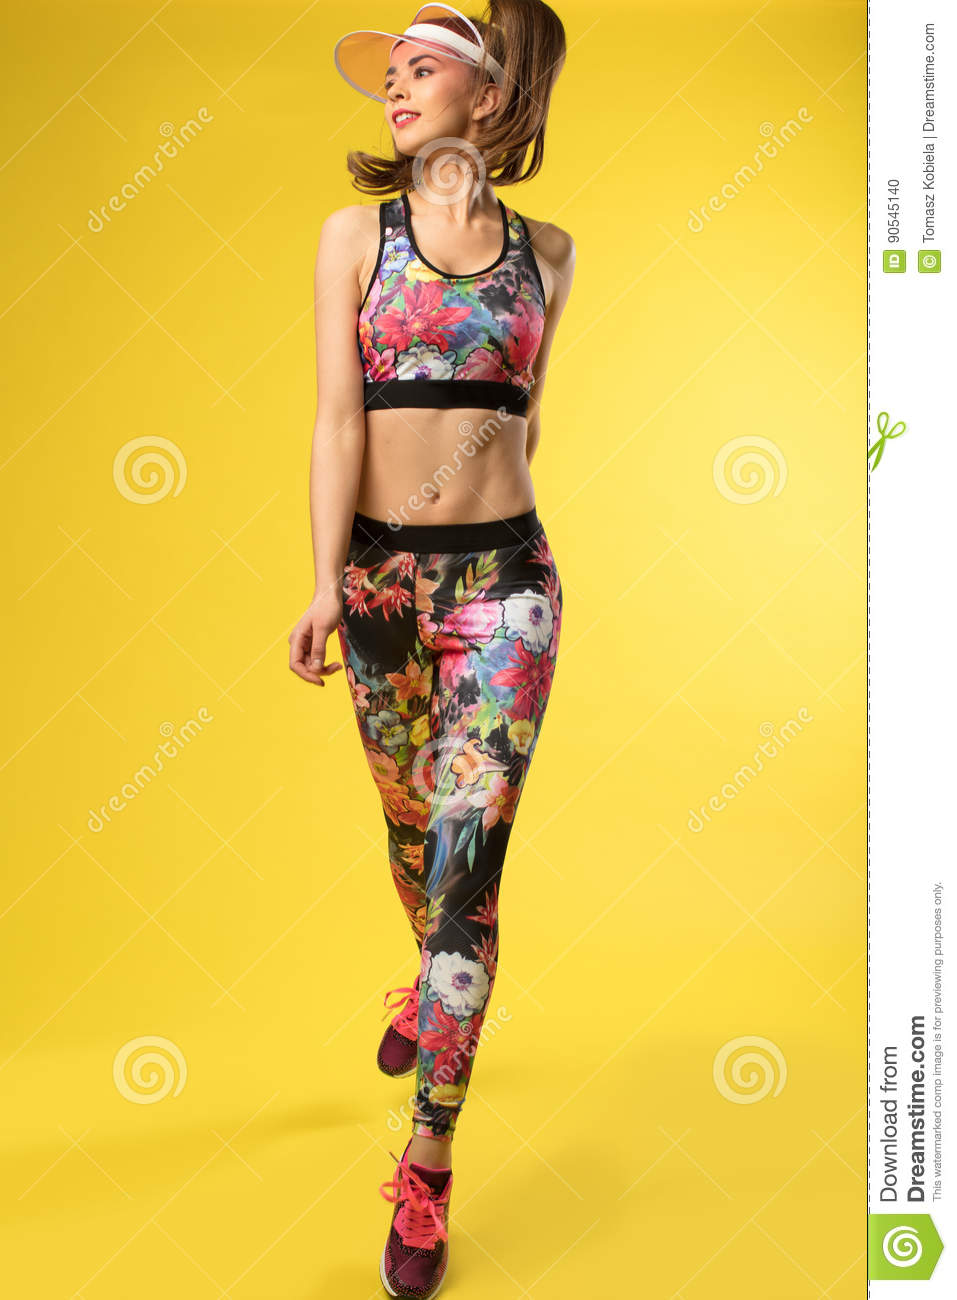 Women with attractive body on the yellow background.